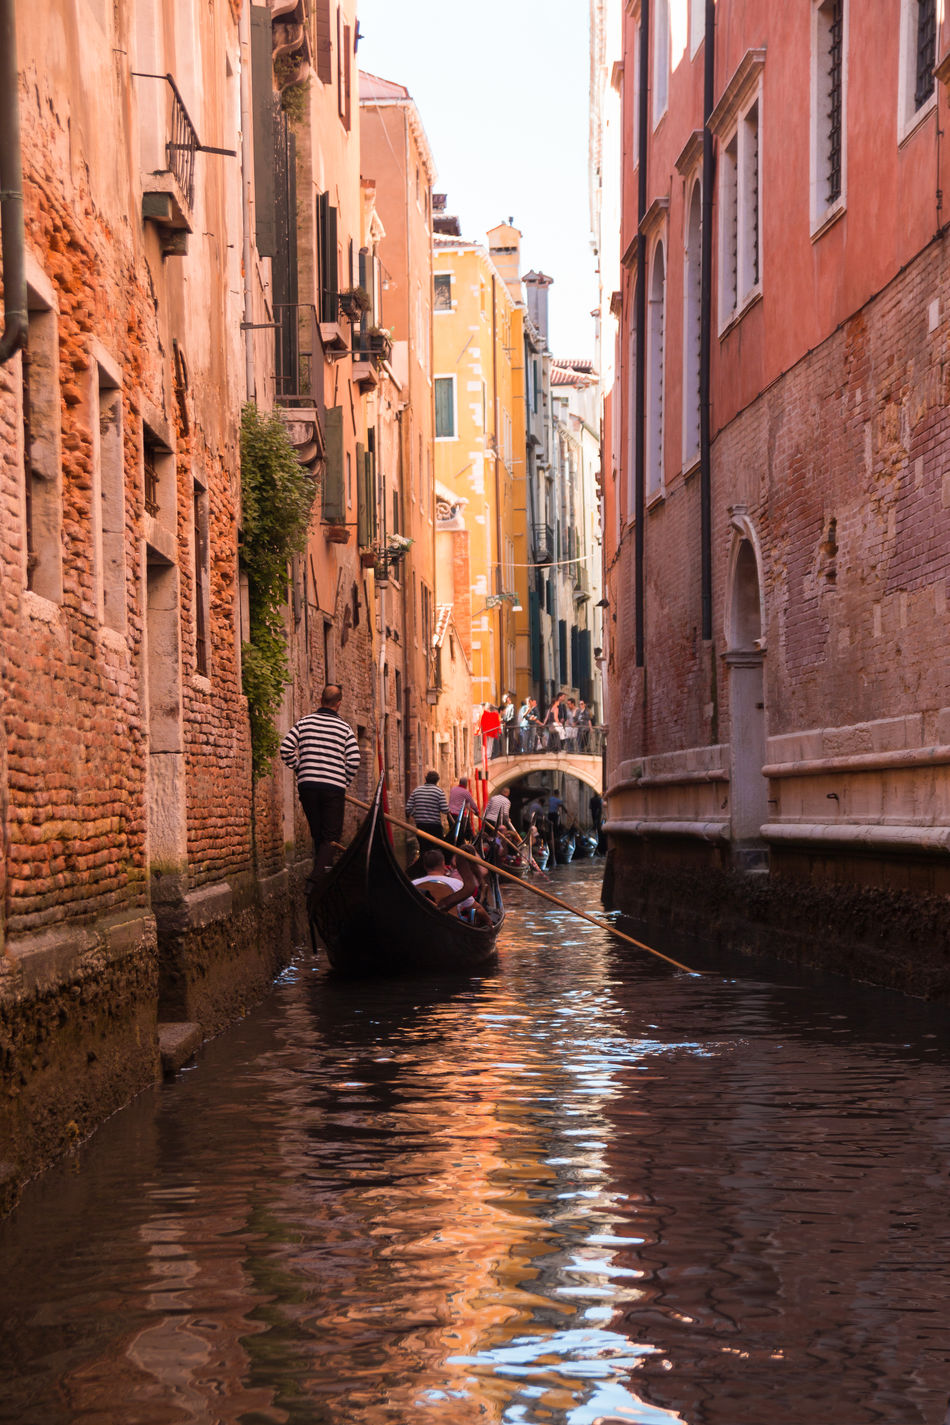 Architecture Building Exterior Built Structure Canal Day Gondola Gondola - Traditional Boat Gondolier Italy Men Mode Of Transport Nautical Vessel Outdoors People Real People Transportation Travel Destinations Venice, Italy Water Waterfront